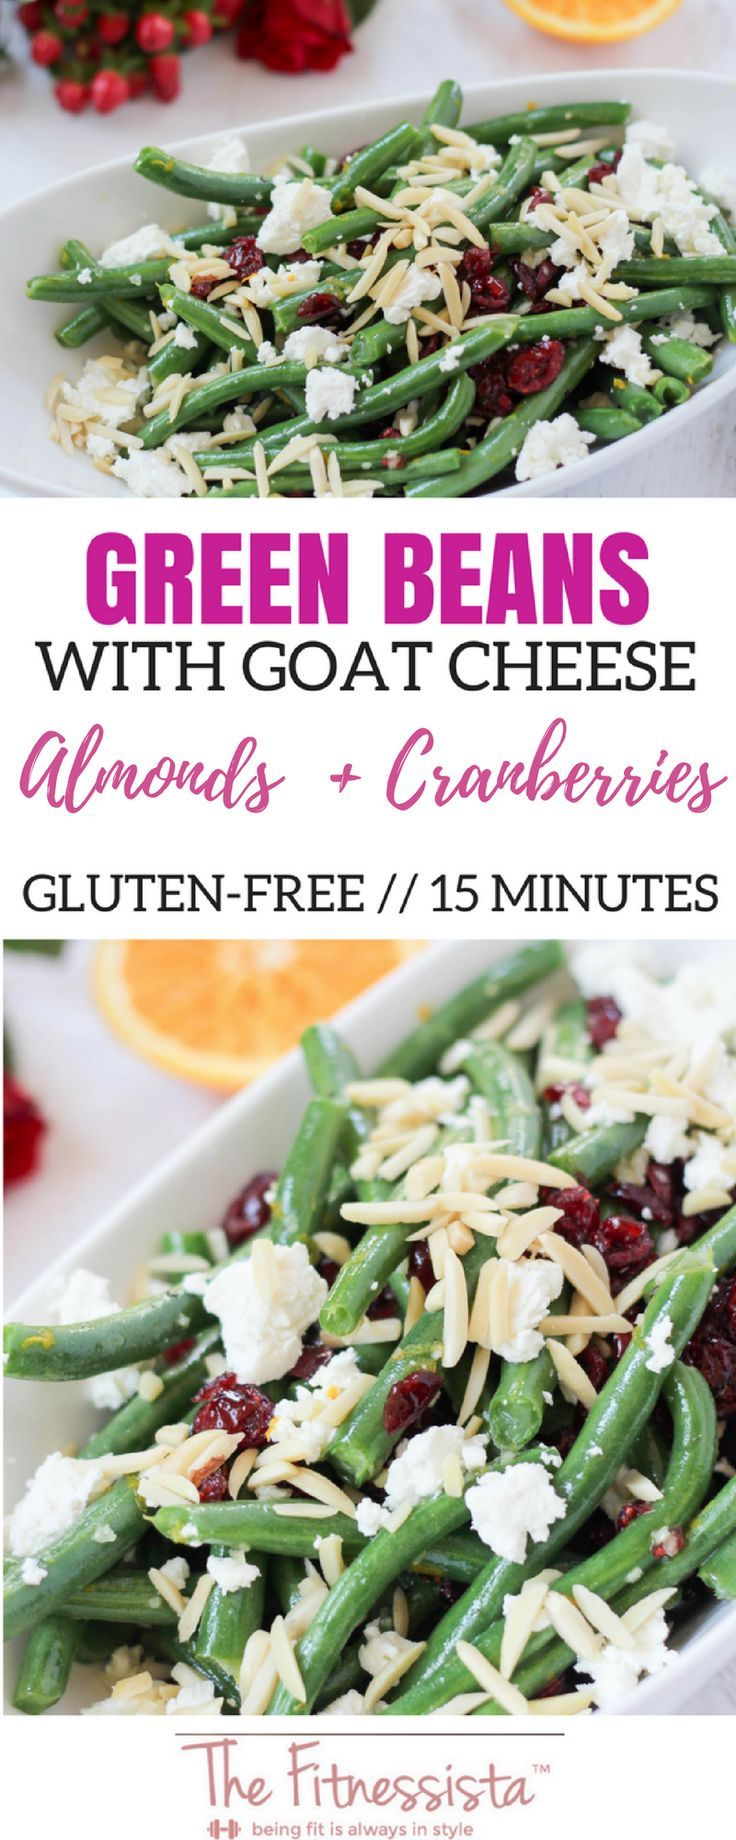 Green beans with goat cheese almonds and cranberries